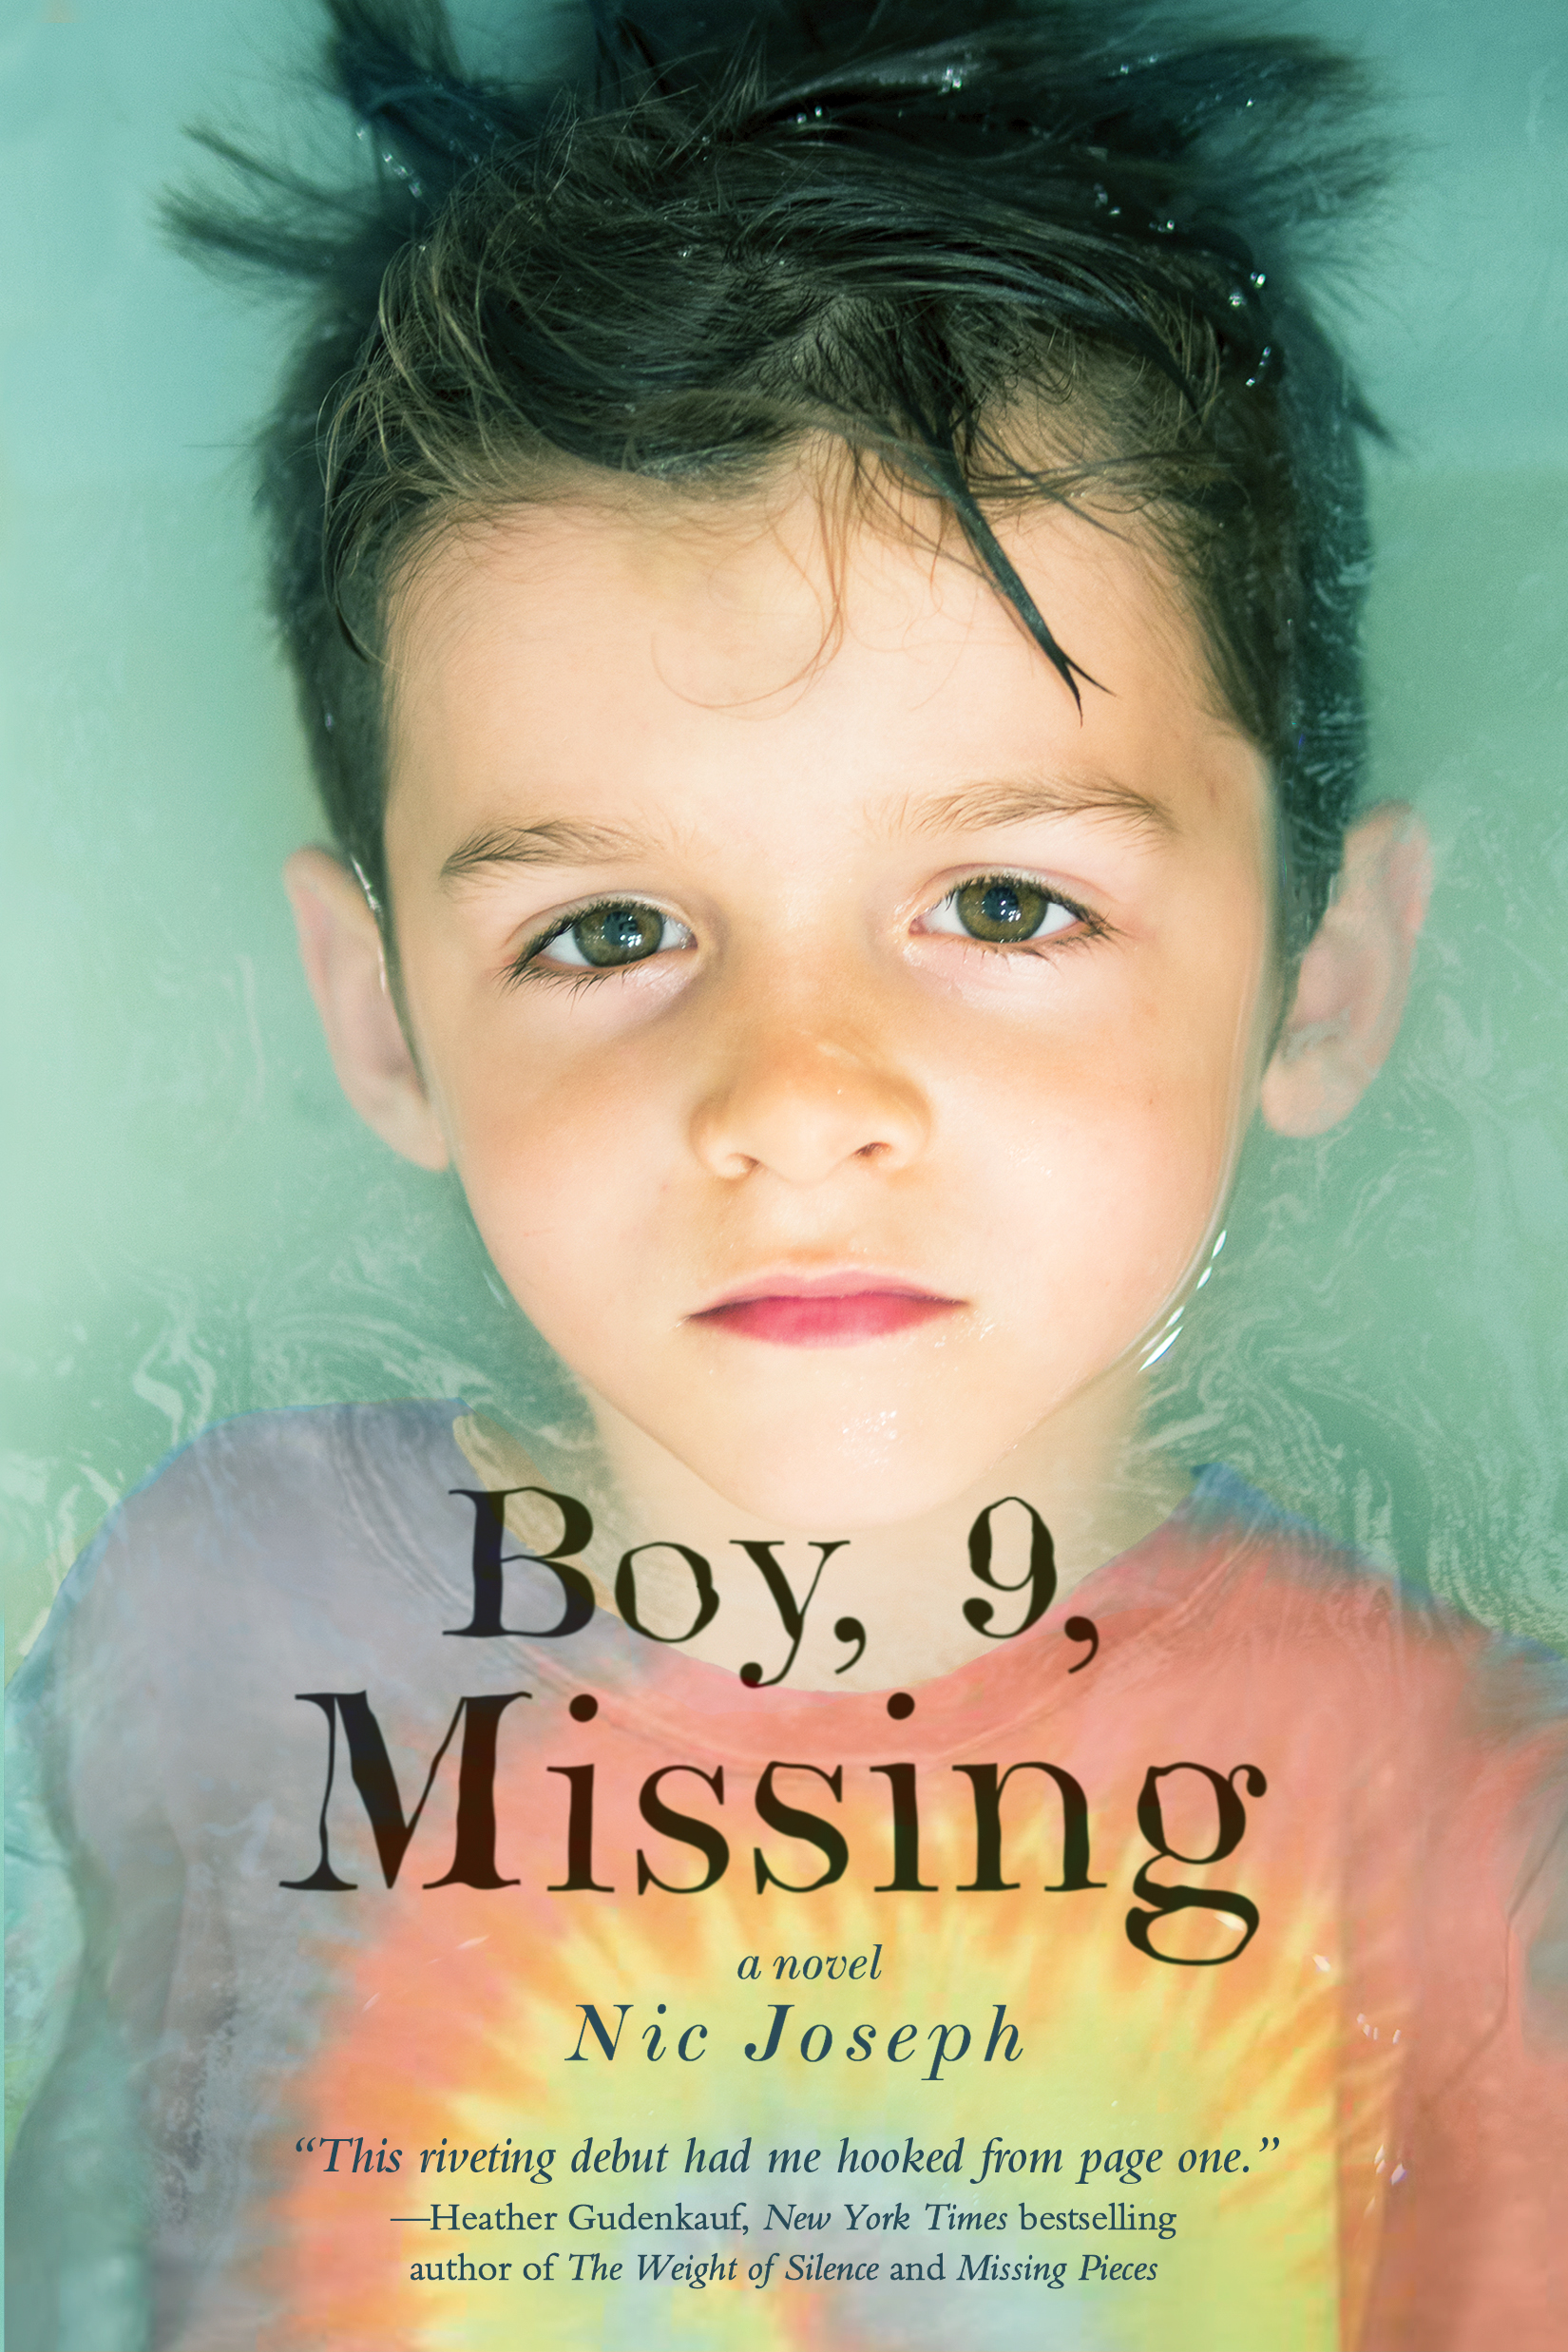 Boy, 9, Missing Book Cover